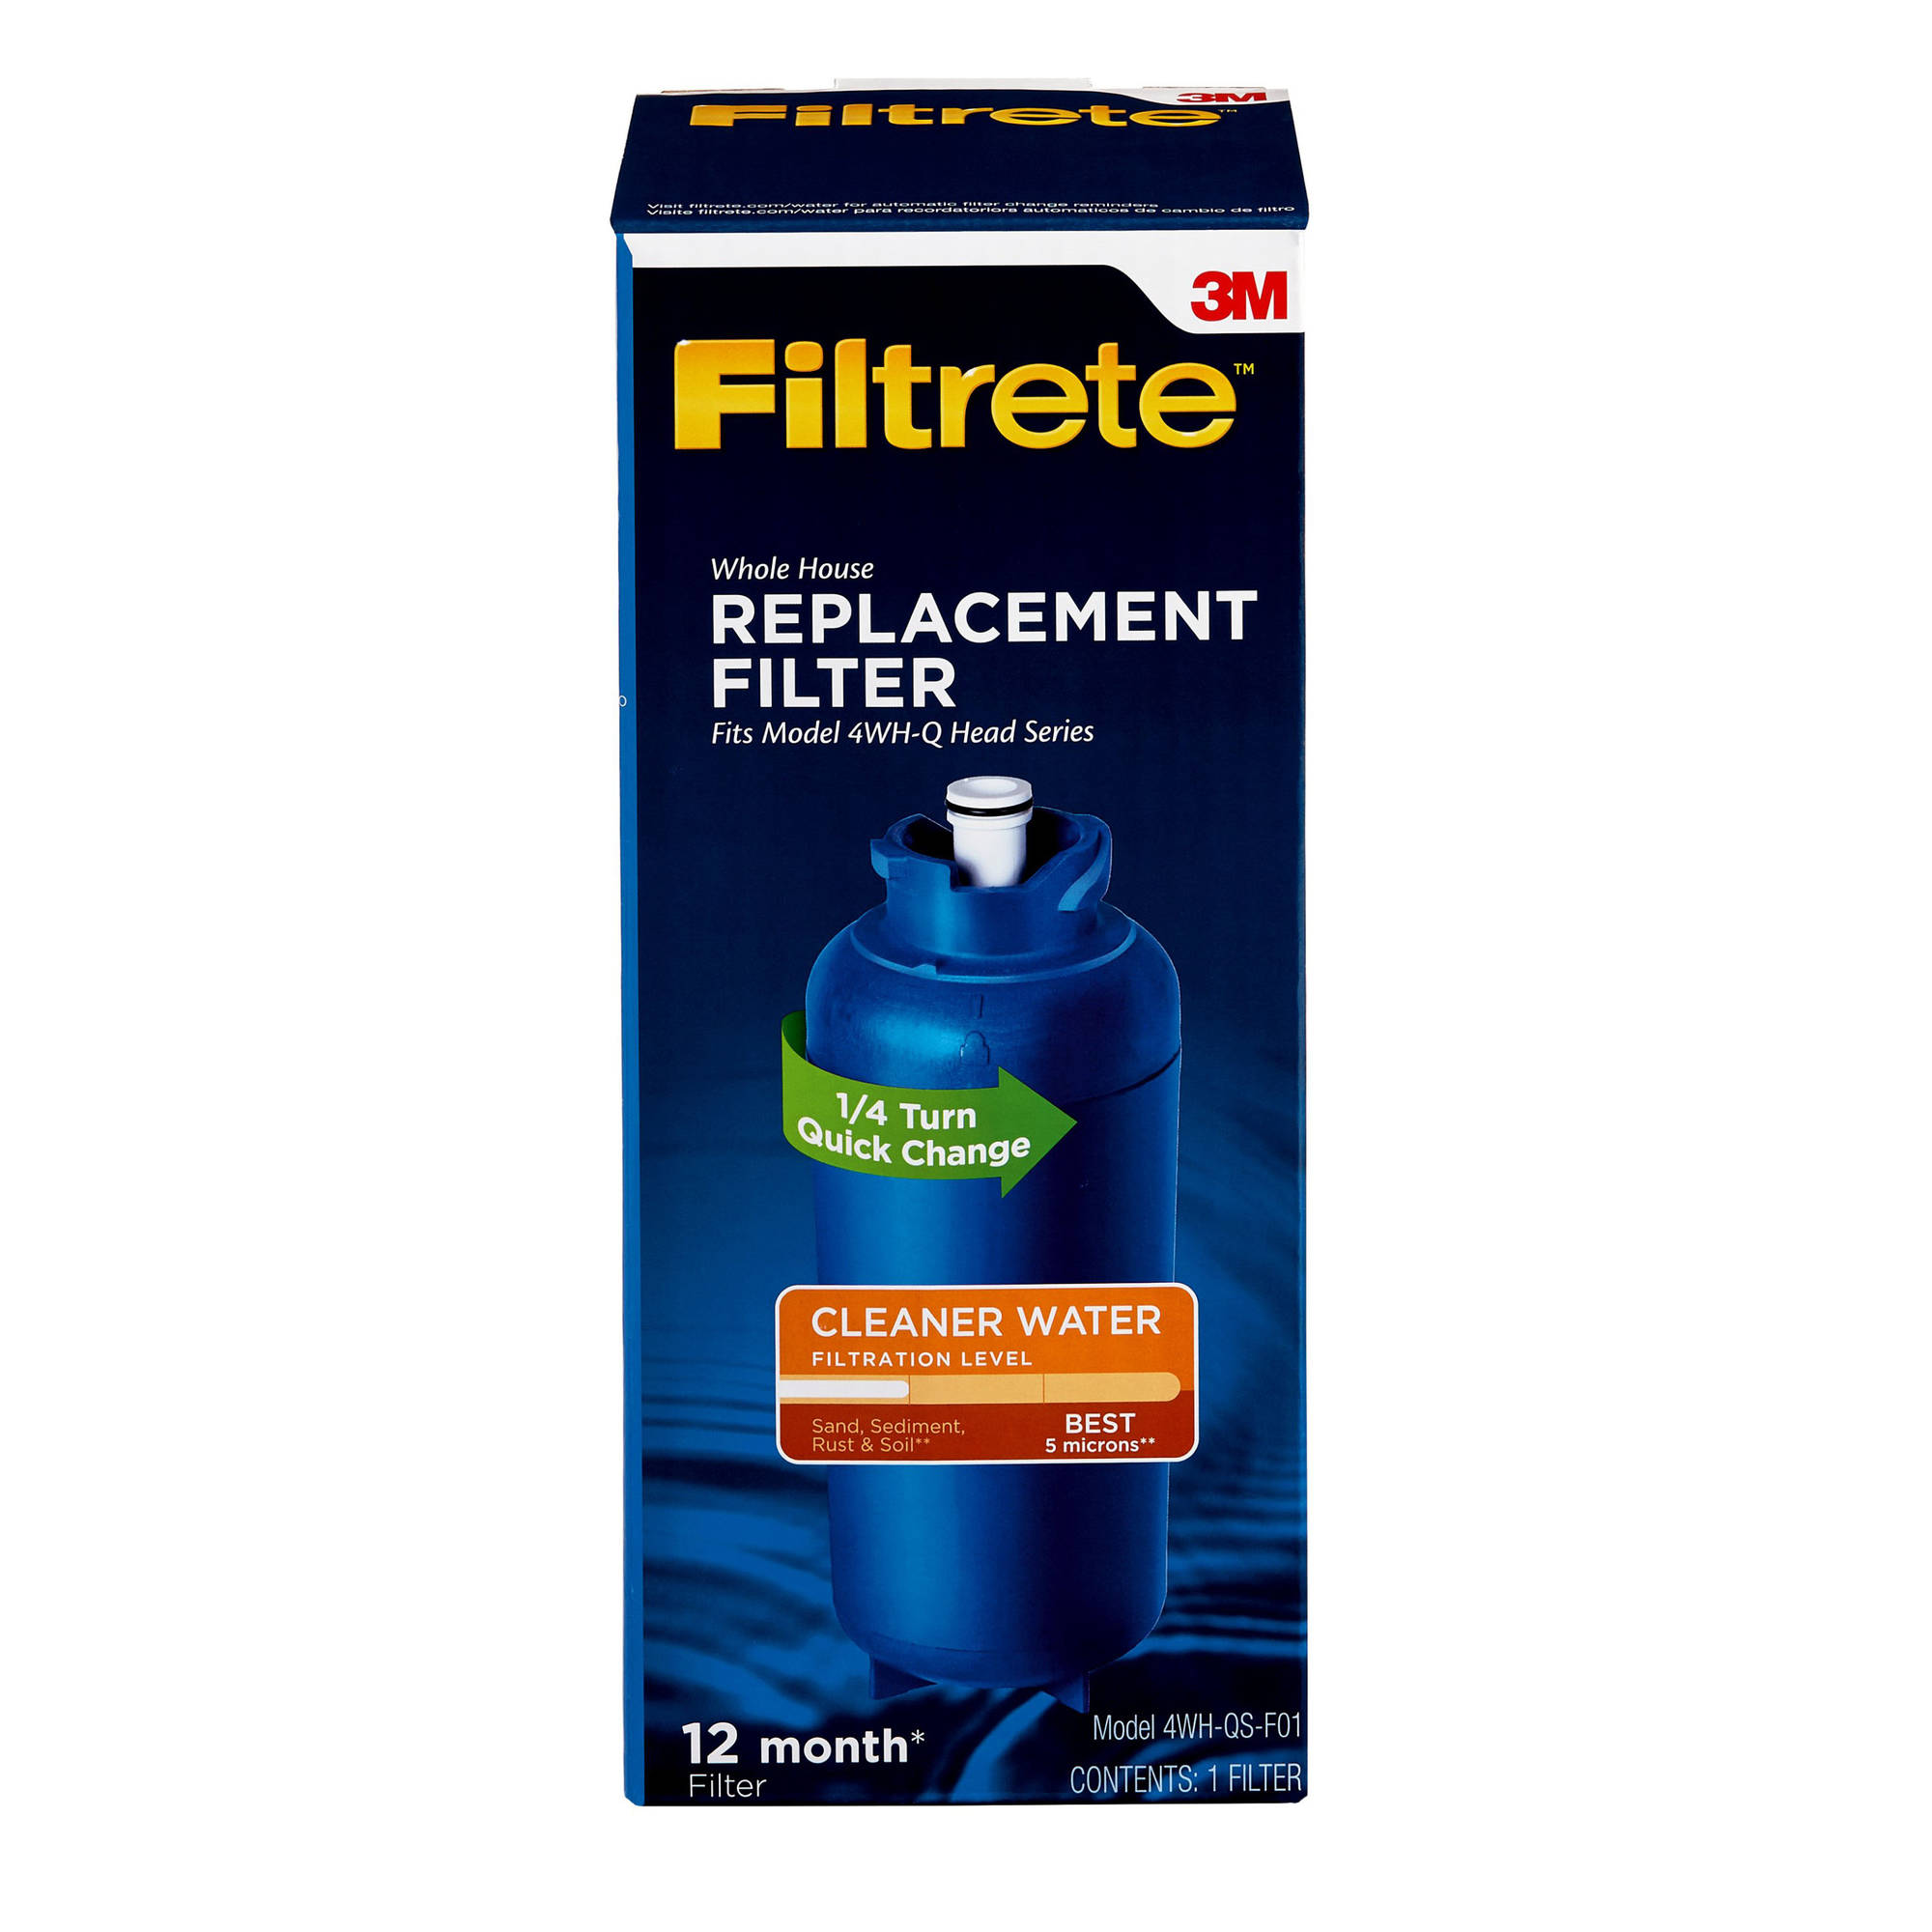 "Filtrete"" Quick Change, Basic Filtration Replacement Filter (sediment)"